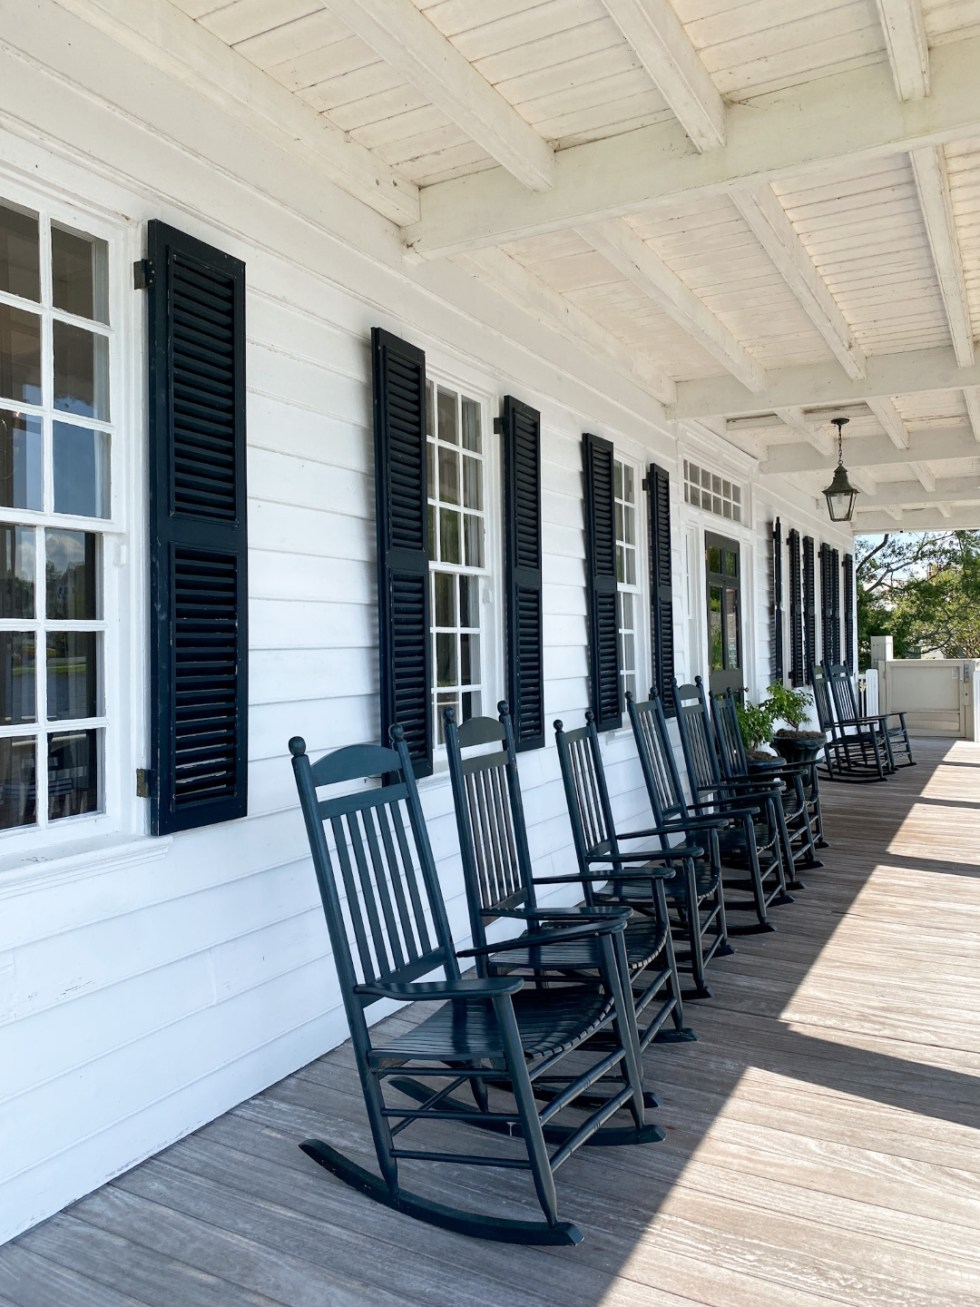 Top 10 Best Things to Do in Edenton, NC: A Complete Travel Guide - I'm Fixin' To - @imfixintoblog Edenton Travel Guide by popular NC travel guid, I'm Fixin' To: image of the Penelope Barker home.